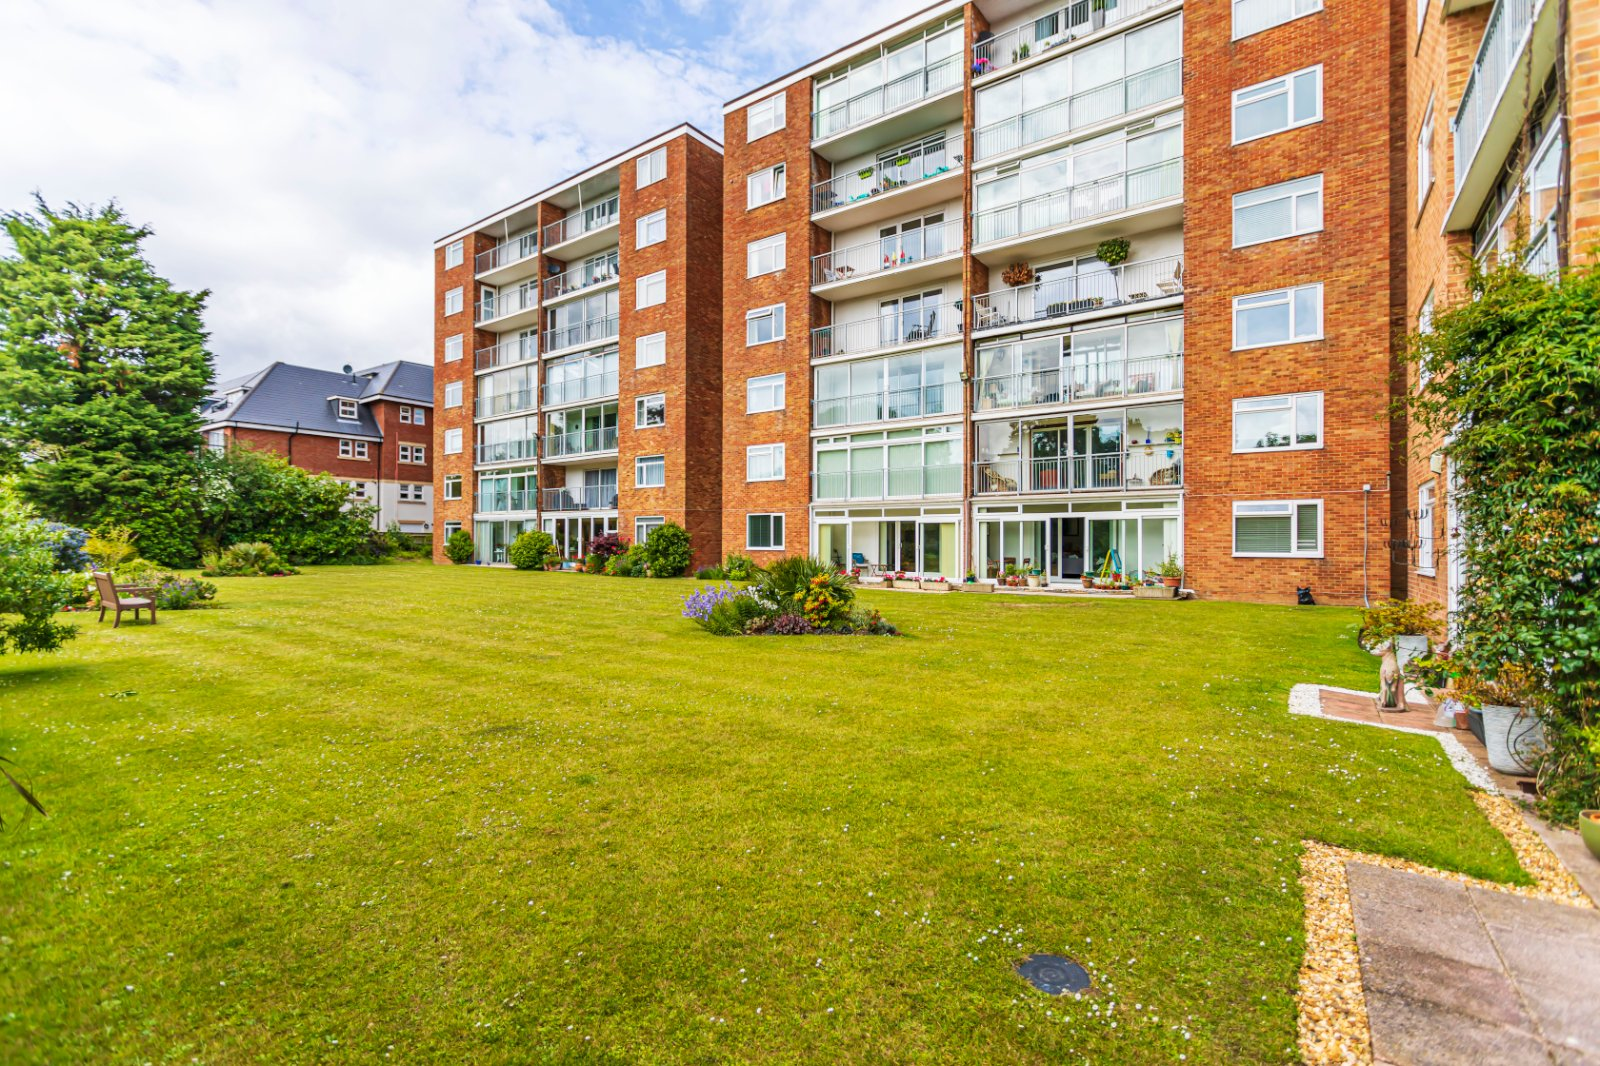 3 bed apartment for sale in Cedar Manor, 19-21 Poole Road - Property Image 1